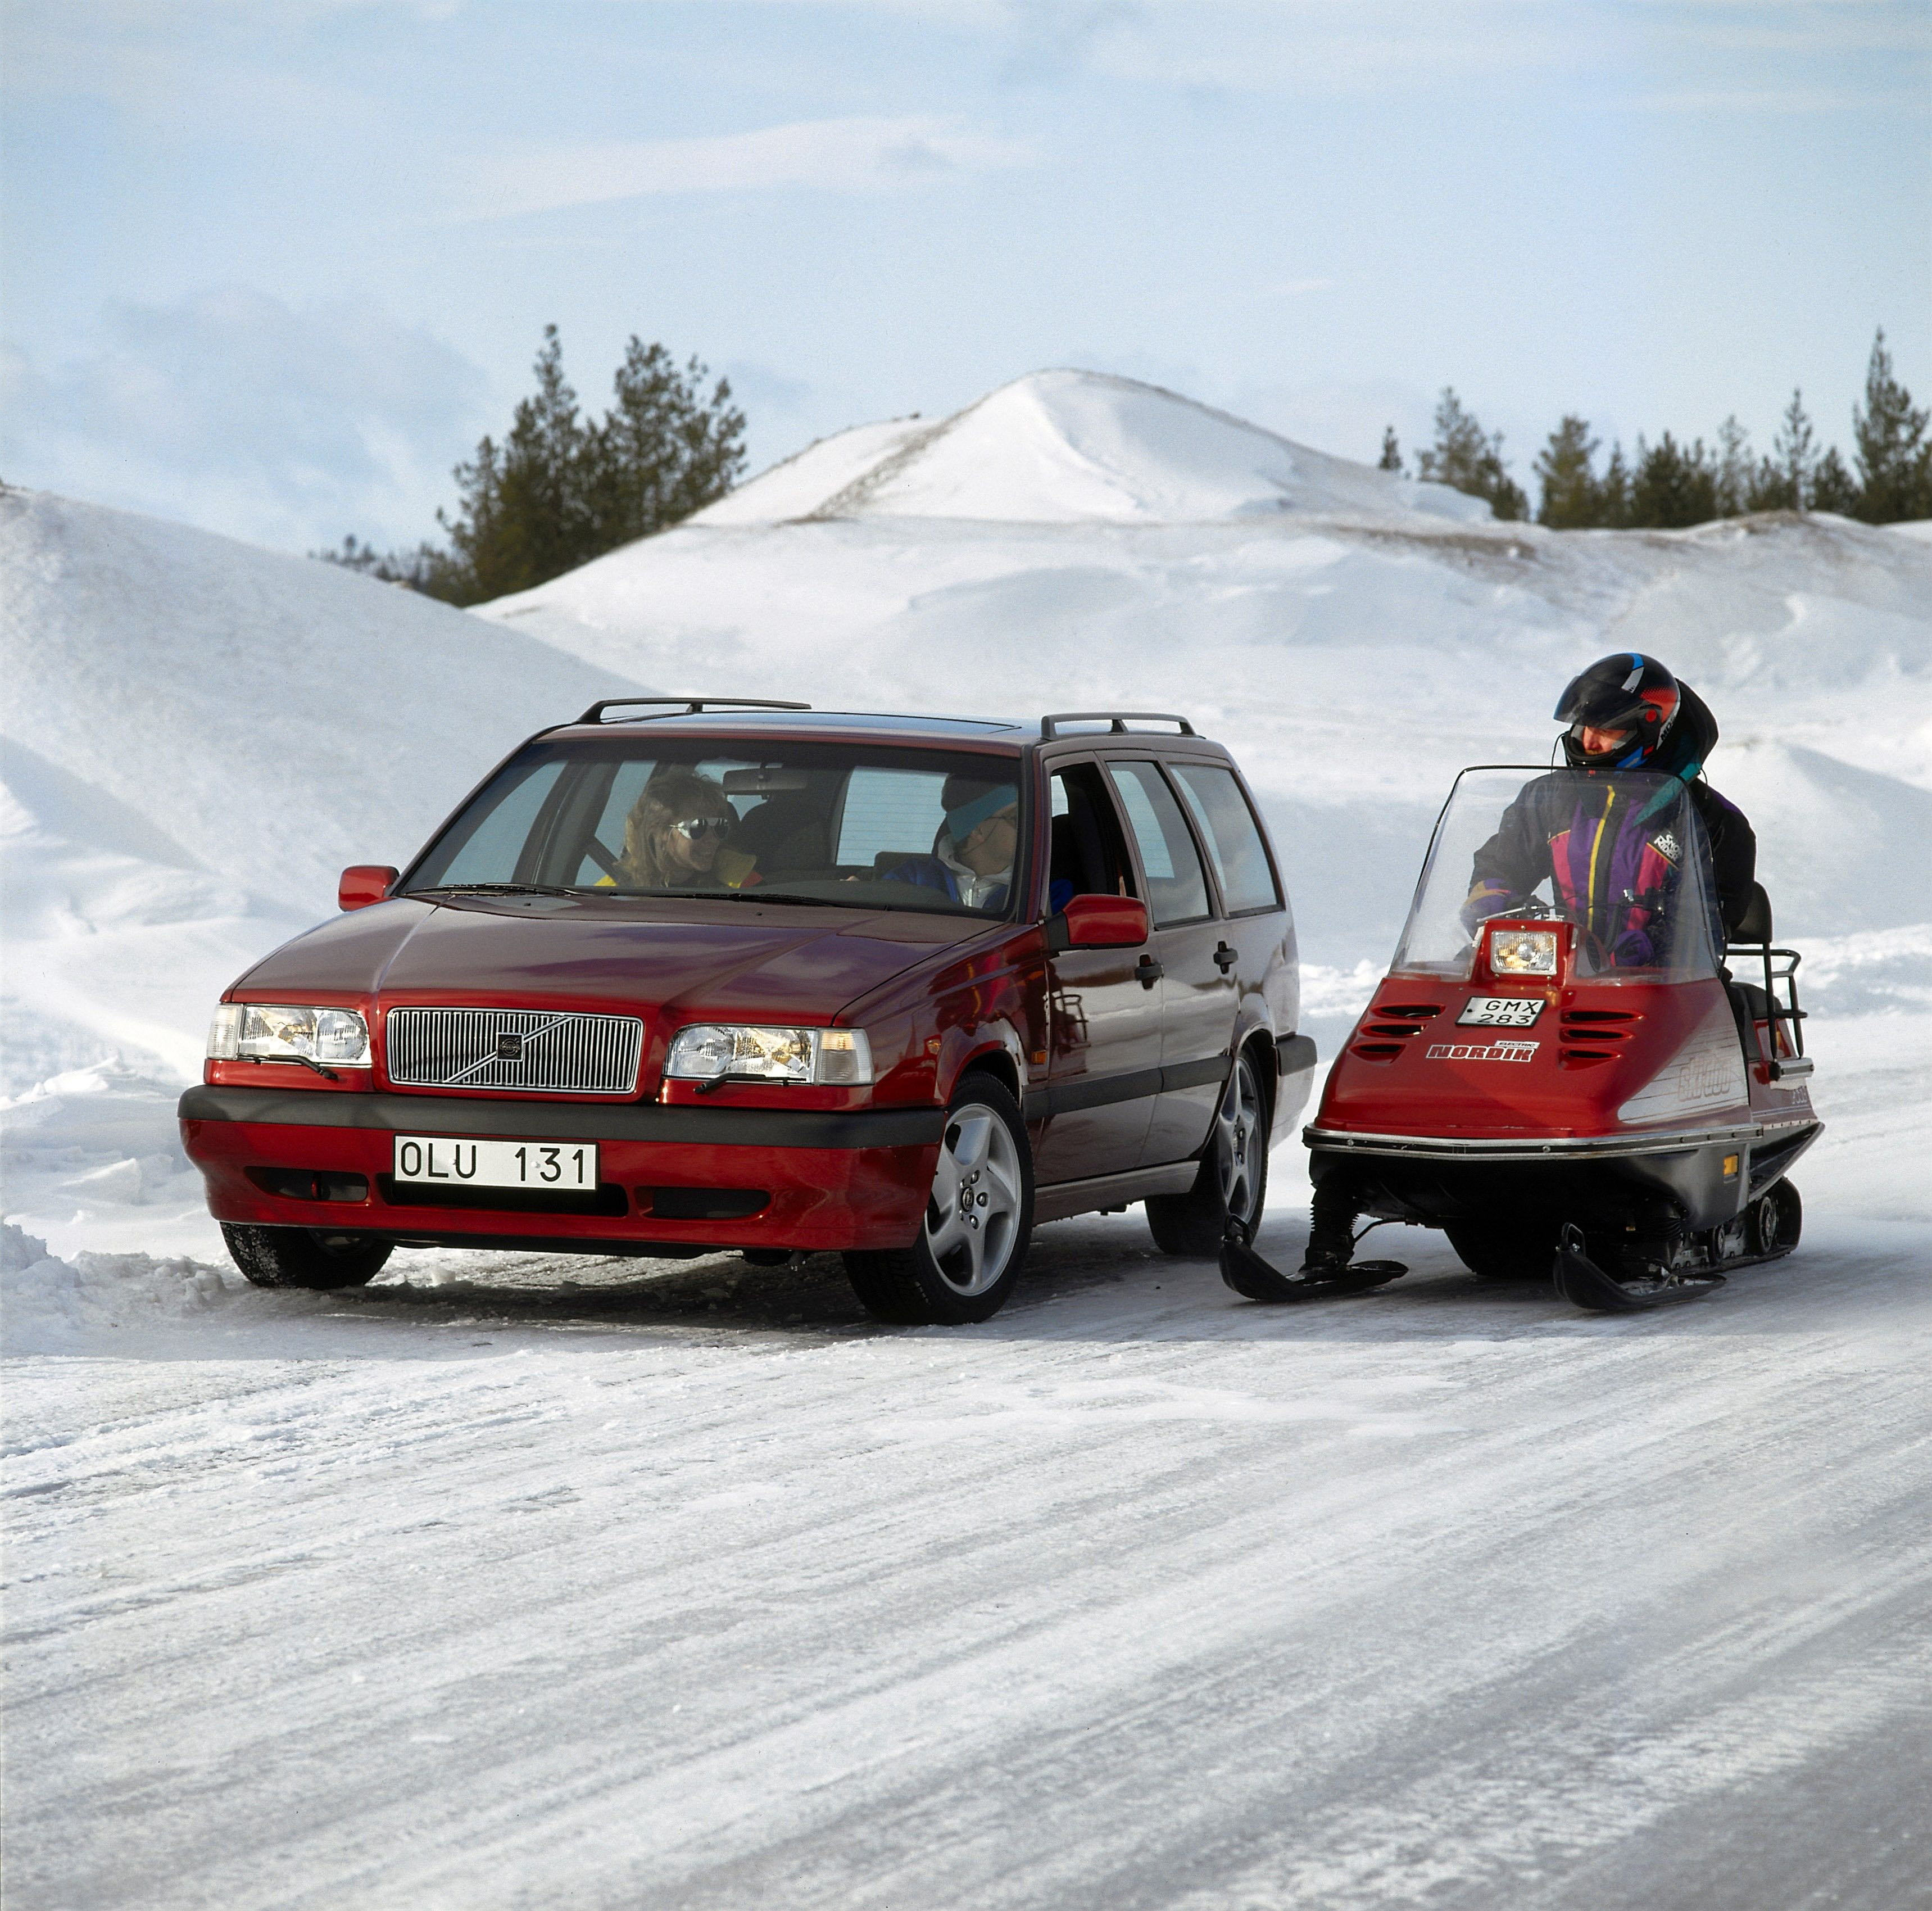 Volvo 850 -  850, 850 wagon, 1994, Exterior, Historical, Images, People